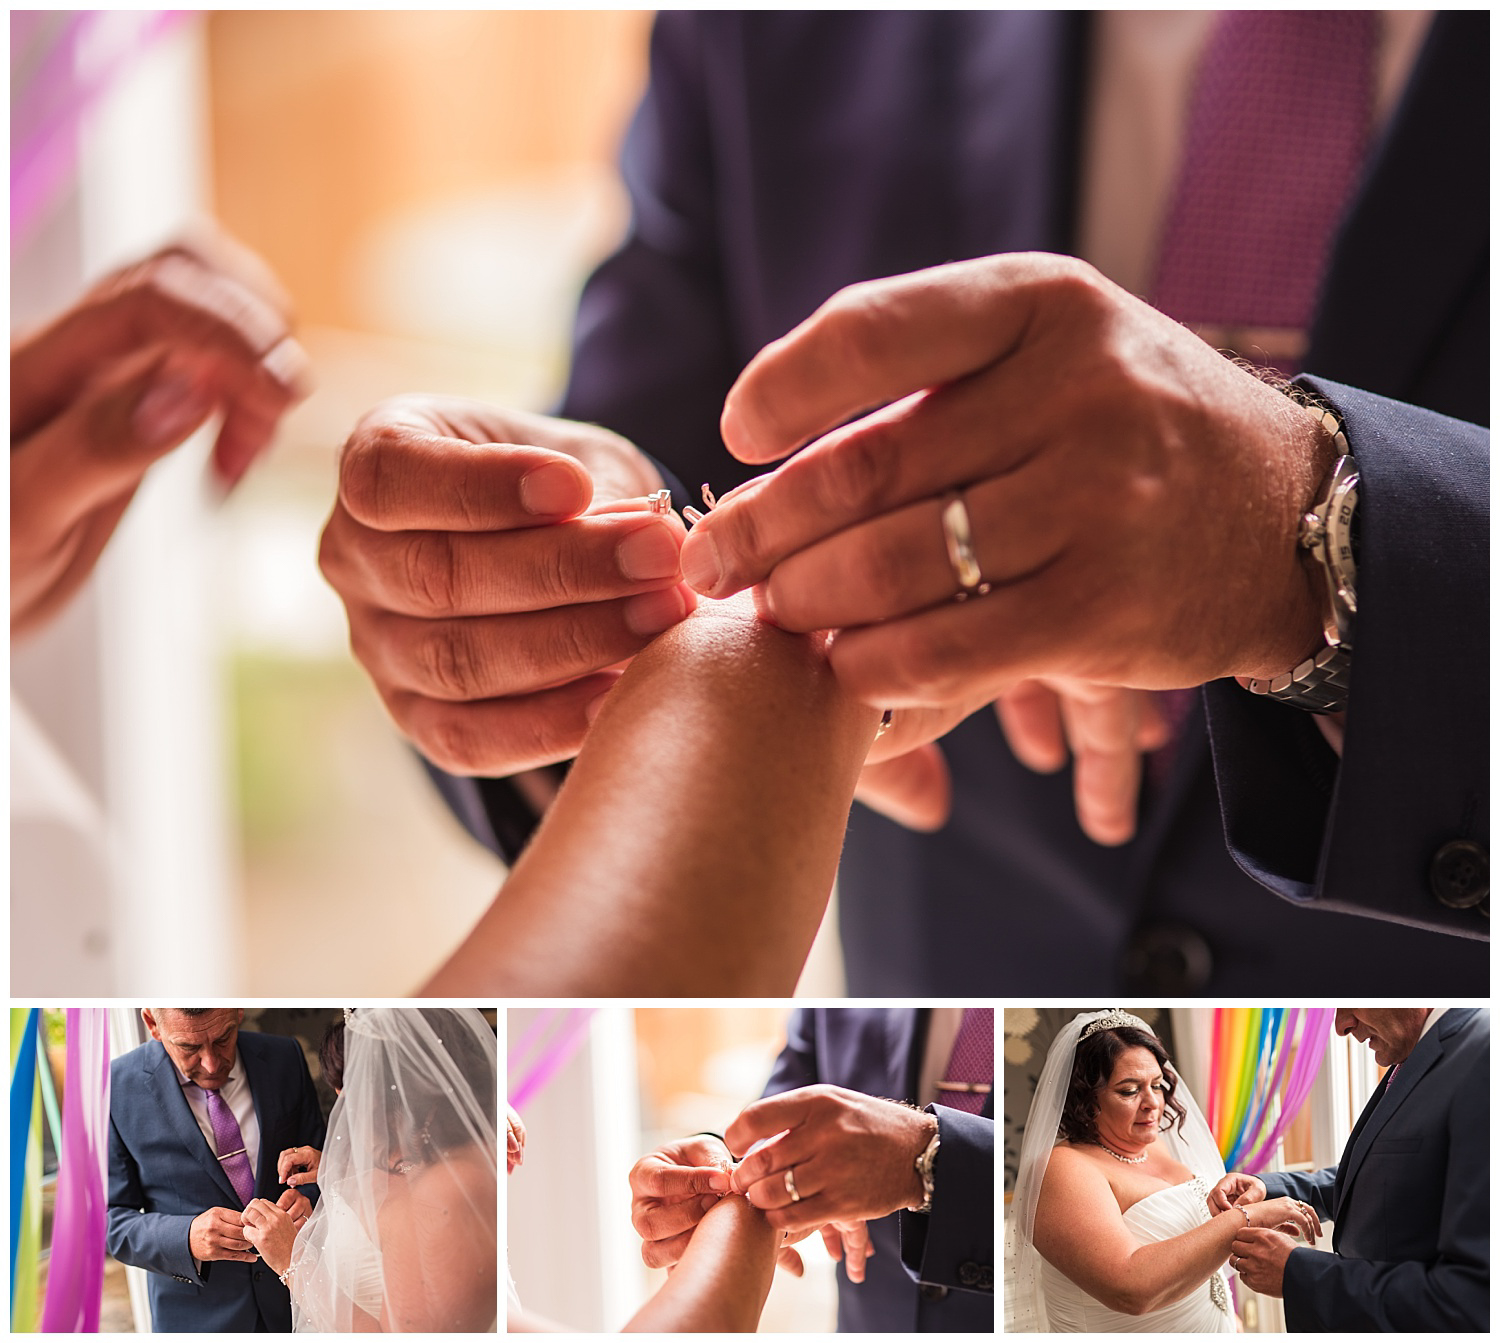 brother helping bride get ready